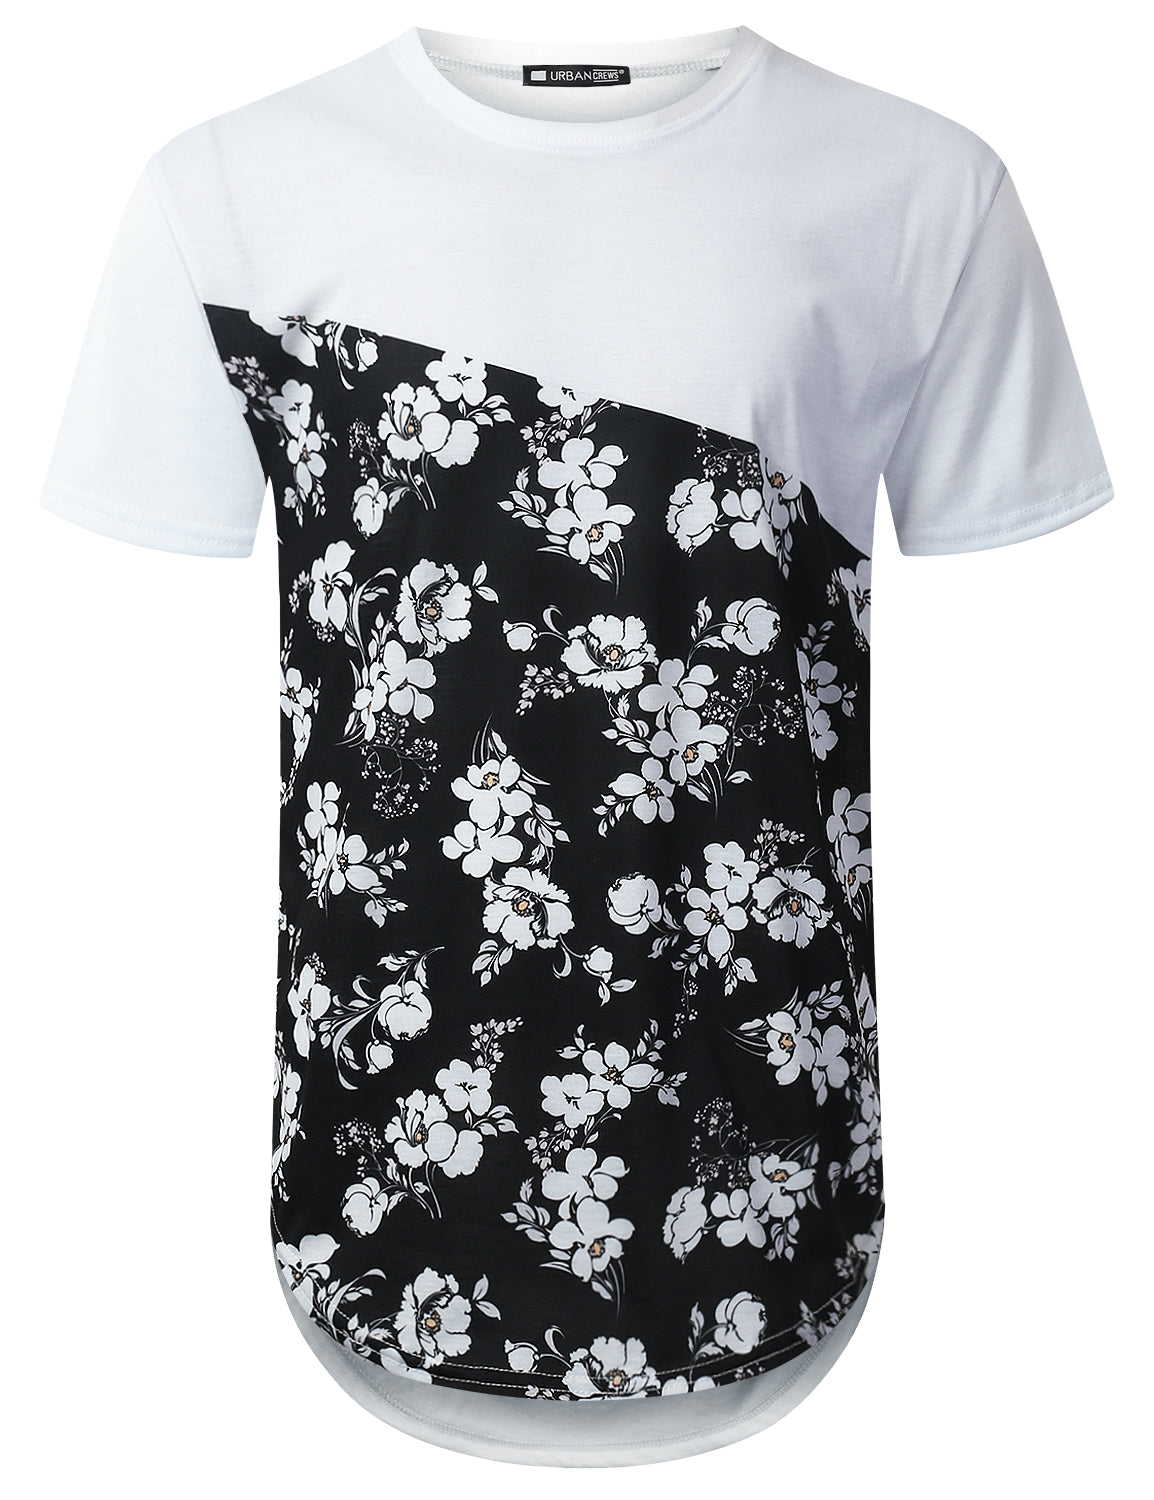 WHITE Bottom Panel Floral Longline T-shirt - URBANCREWS